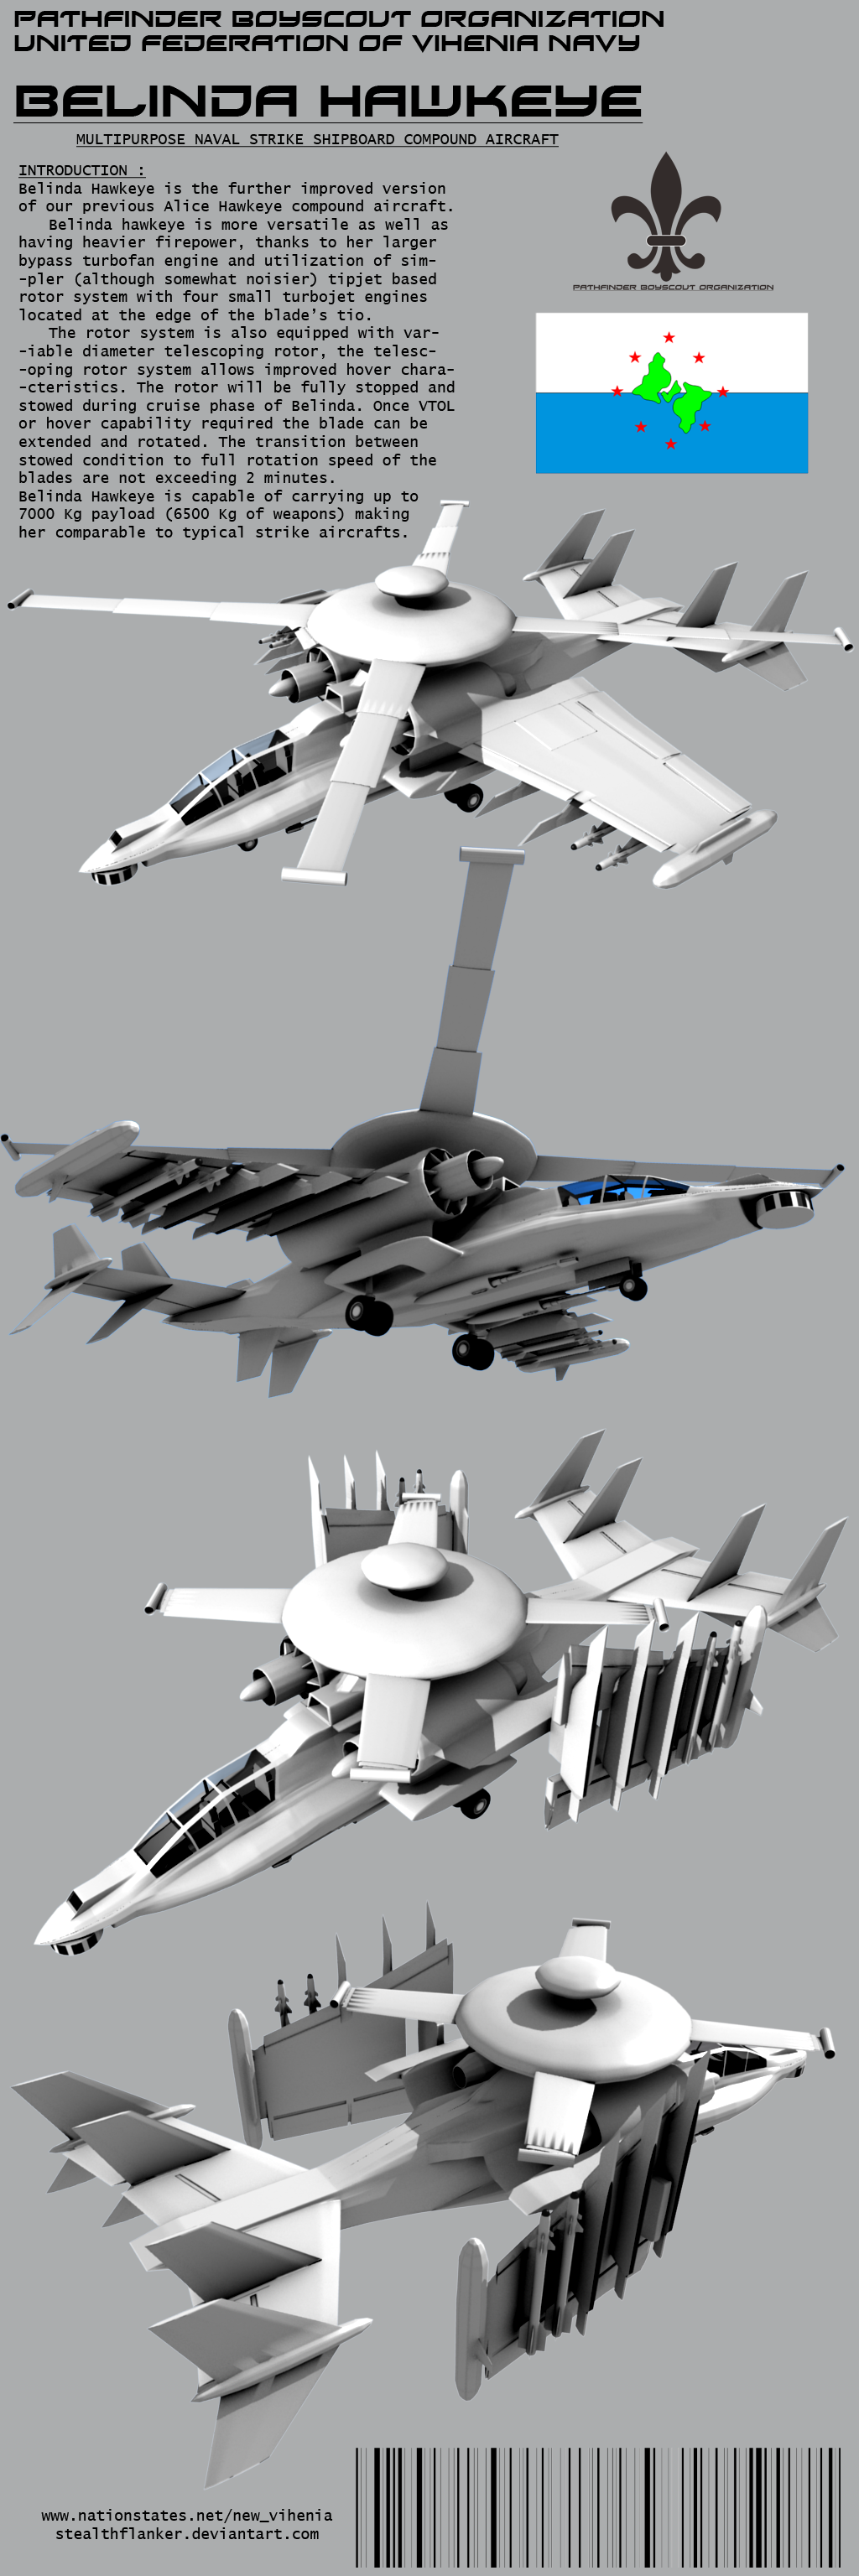 belinda_hawkeye_compound_aircraft_by_stealthflanker-d55k7ft.png